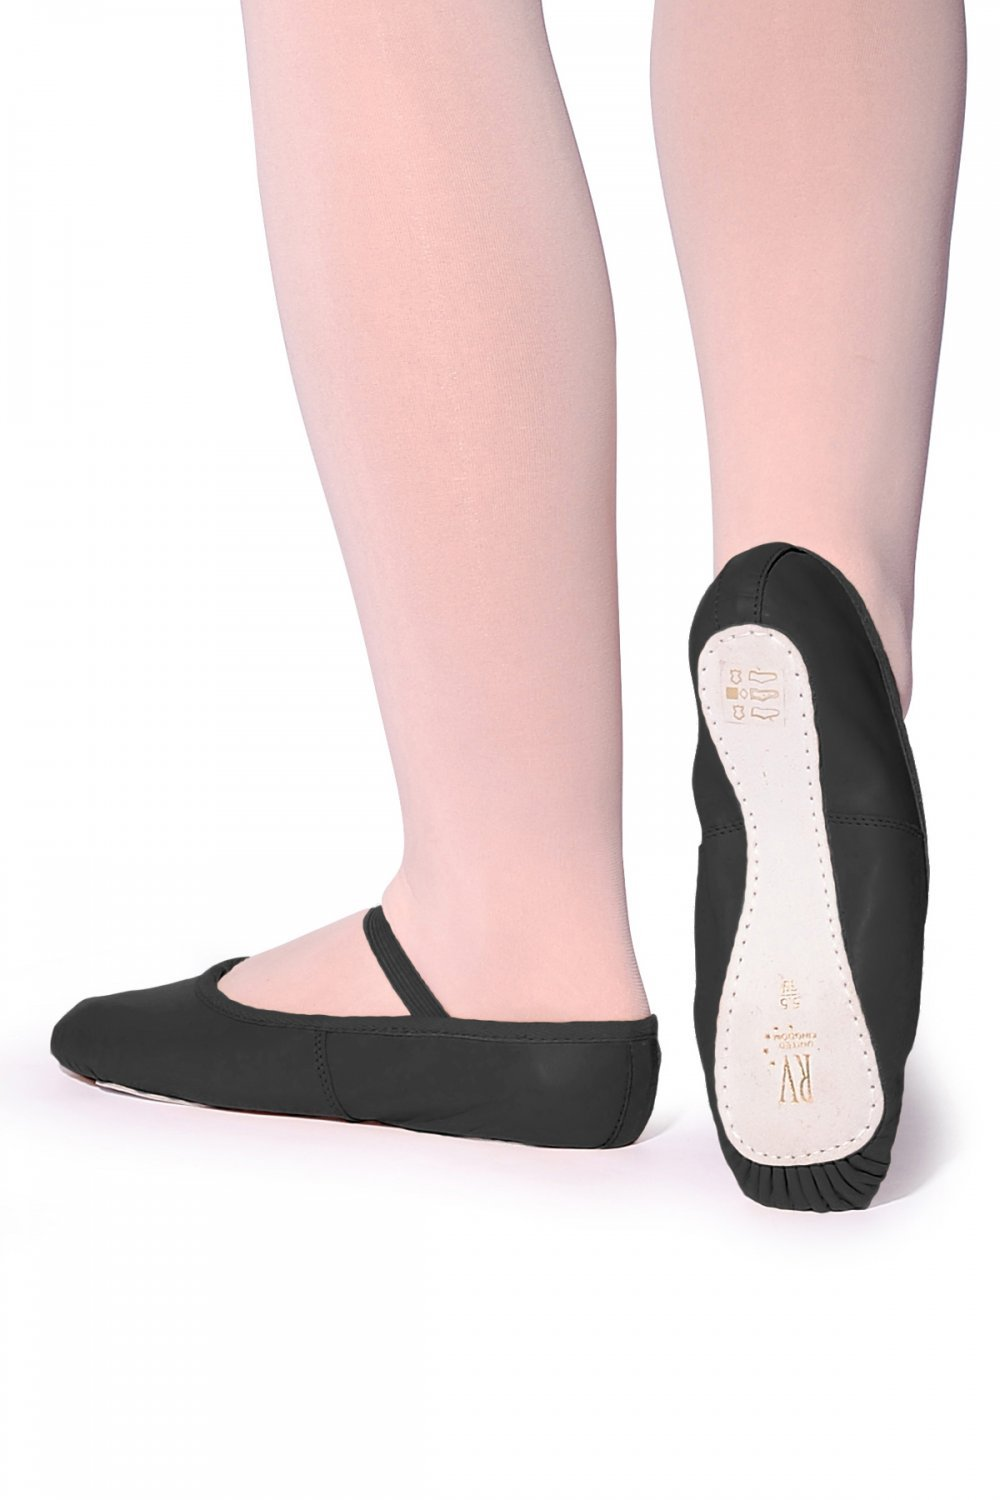 ballet shoes. roch valley ophelia full sole leather ballet shoes: amazon.co.uk: sports \u0026 outdoors shoes